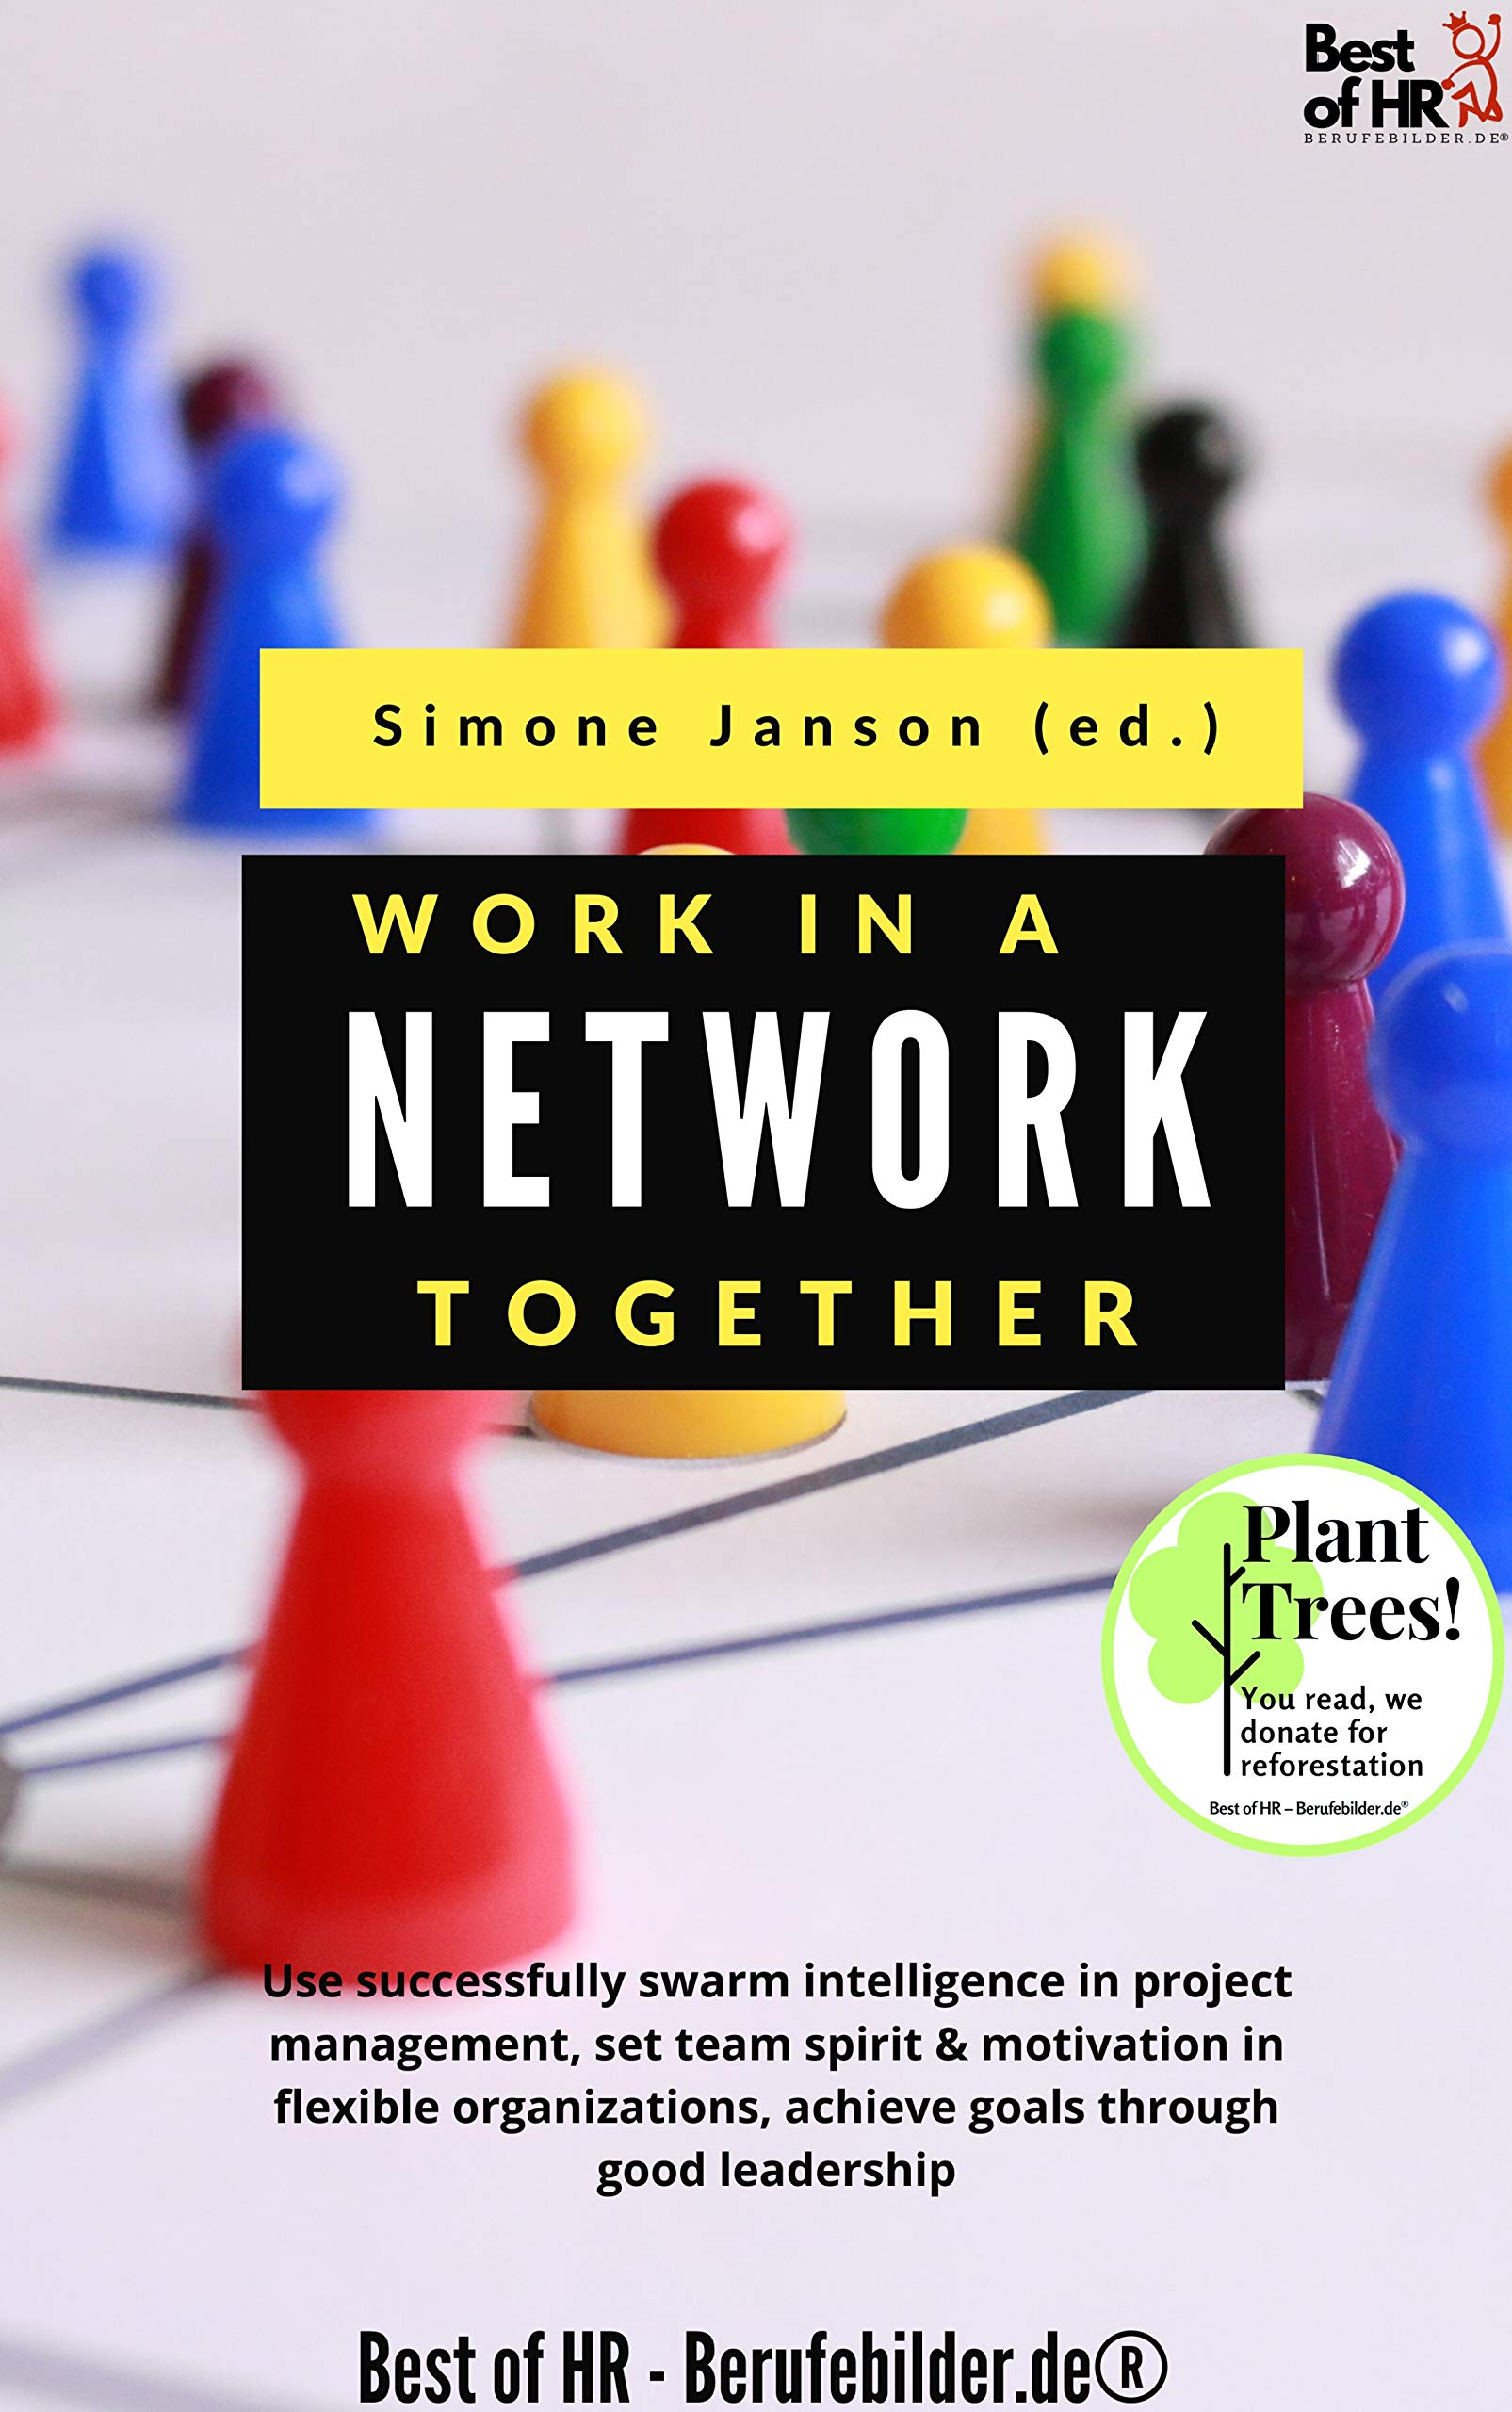 Work Together in a Network: Use successfully swarm intelligence in project management, set team spirit & motivation in flexible organizations, achieve goals through good leadership